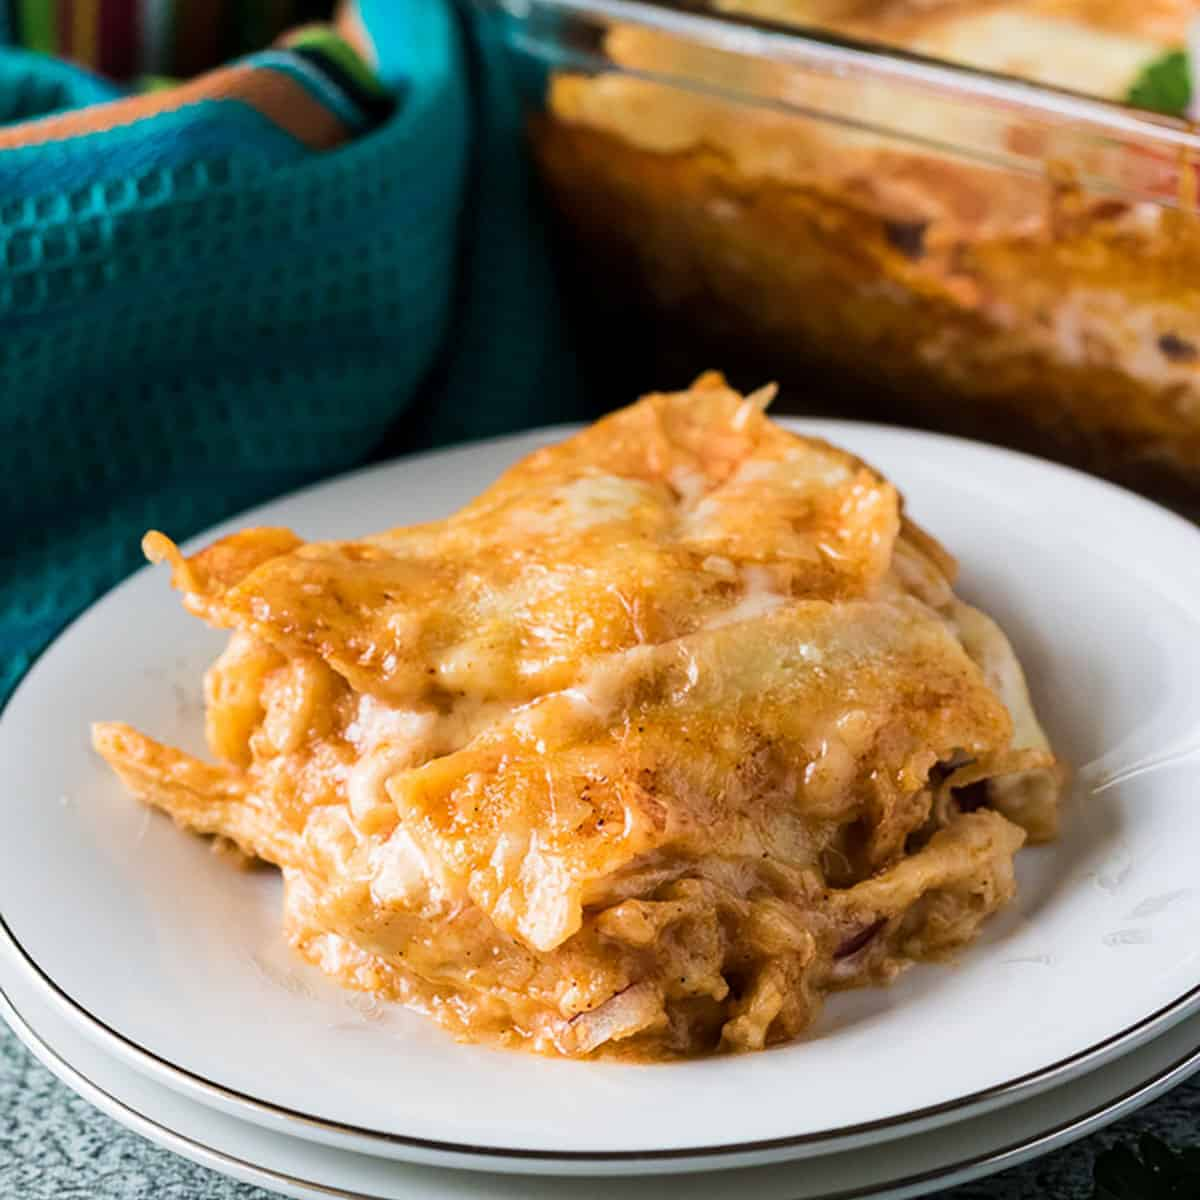 Chicken enchilada casserole on a white plate.